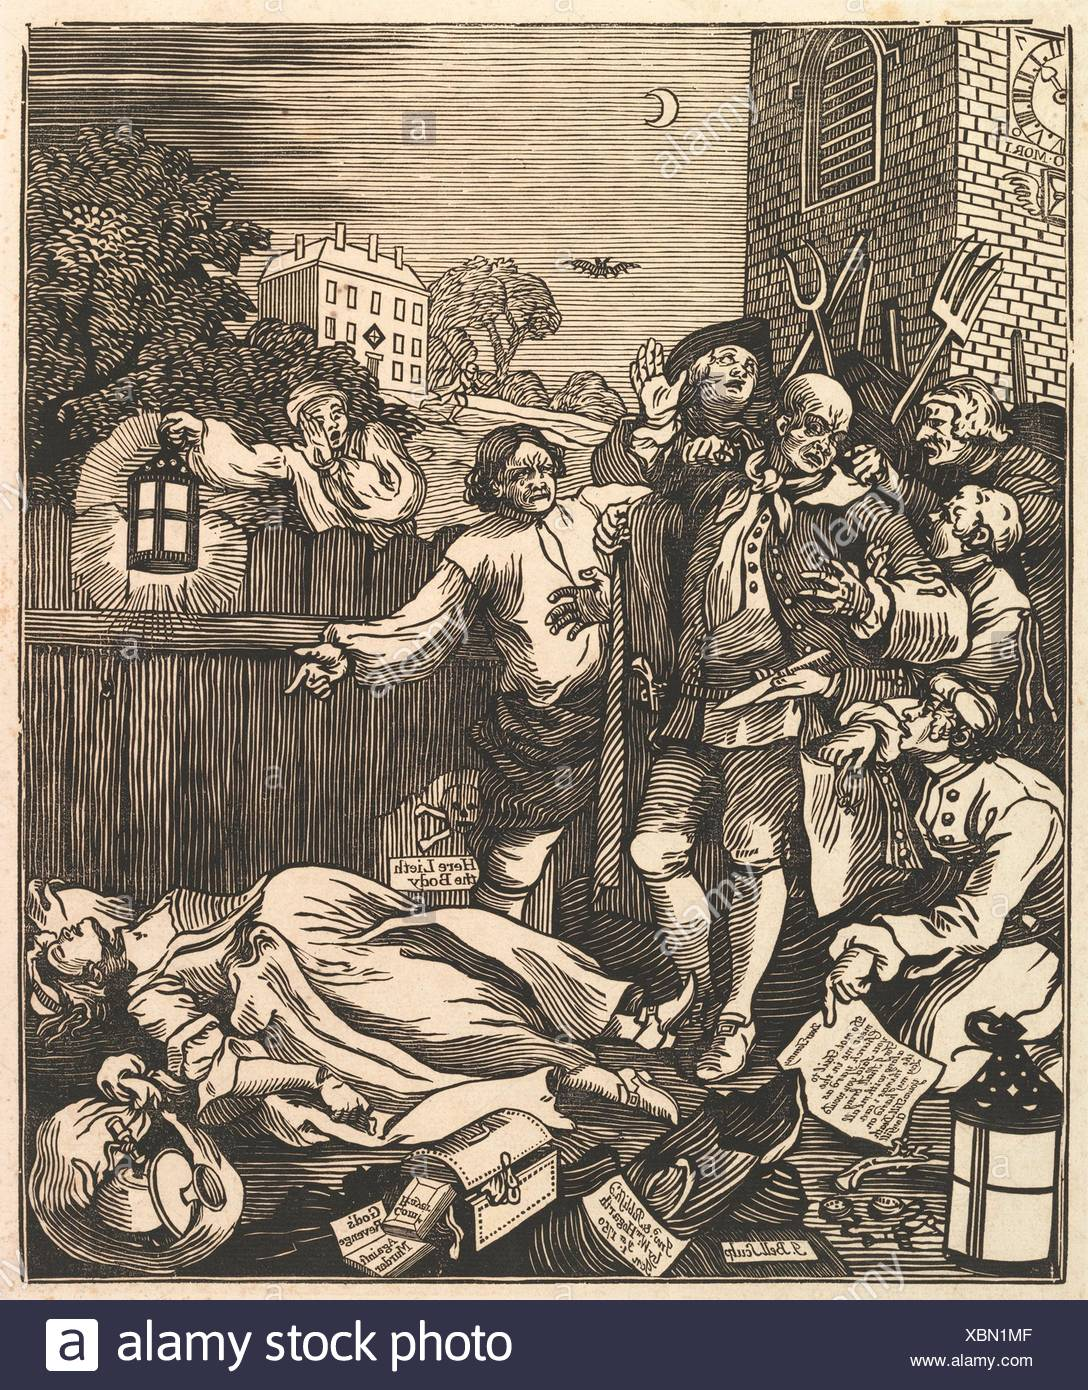 Cruelty in Perfection. Printmaker: J. Bell (British, active 1721-80); Artist: After William Hogarth (British, London 1697-1764 London); Publisher: - Stock Image